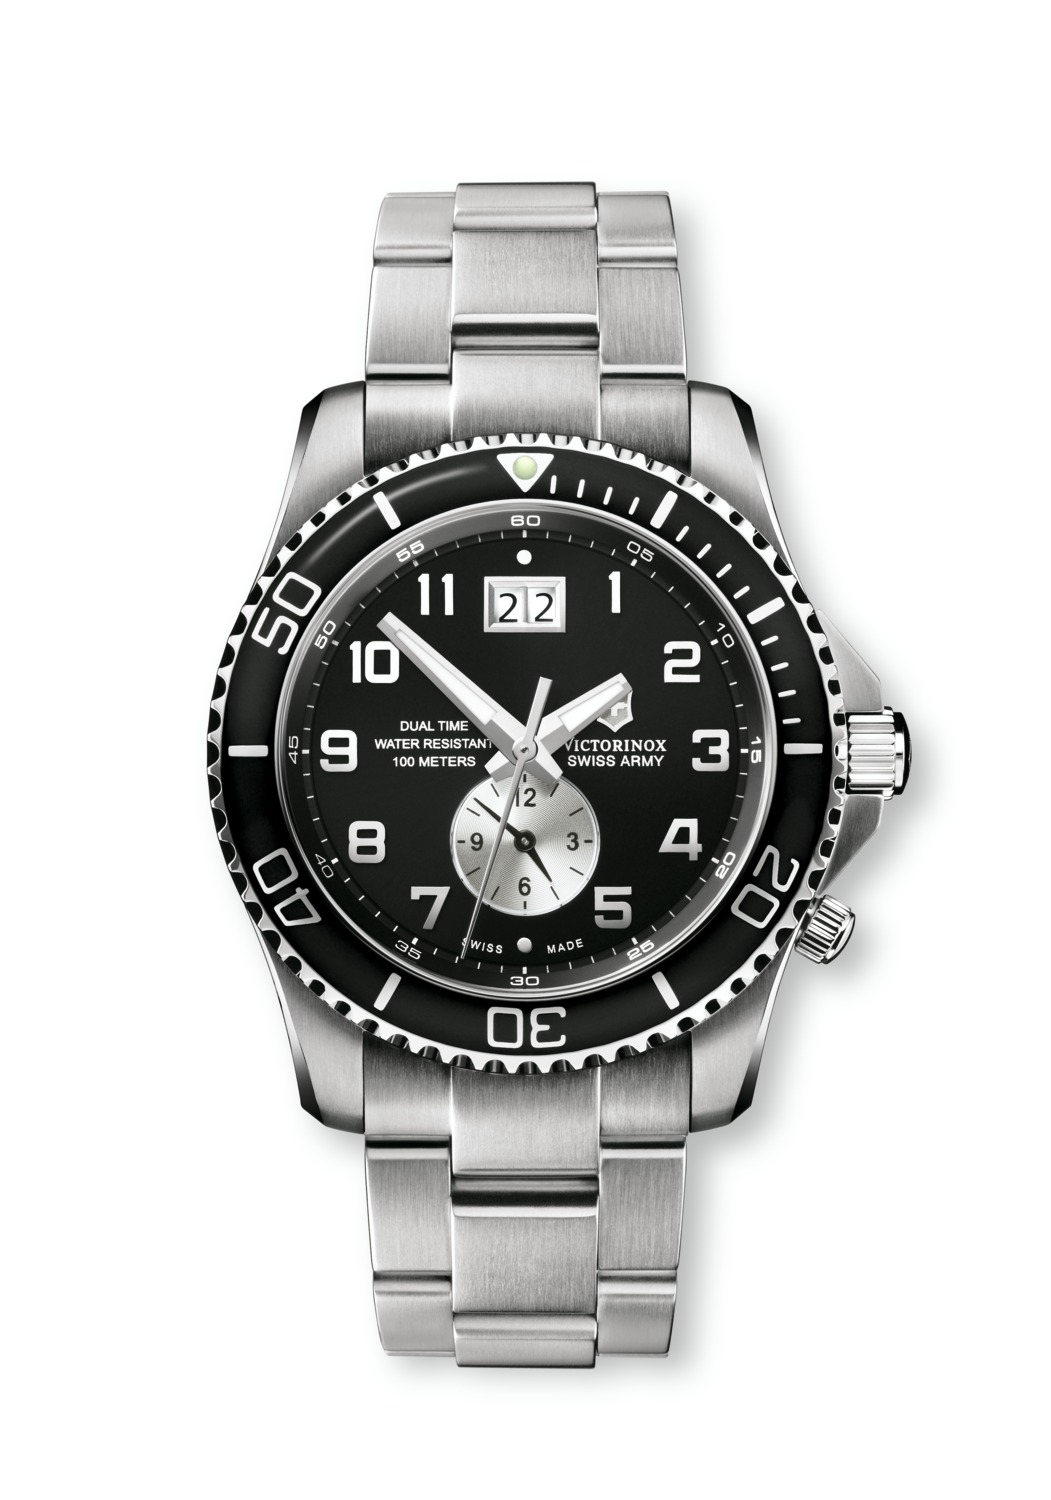 часы Victorinox Swiss Army Maverick GS Dual Time